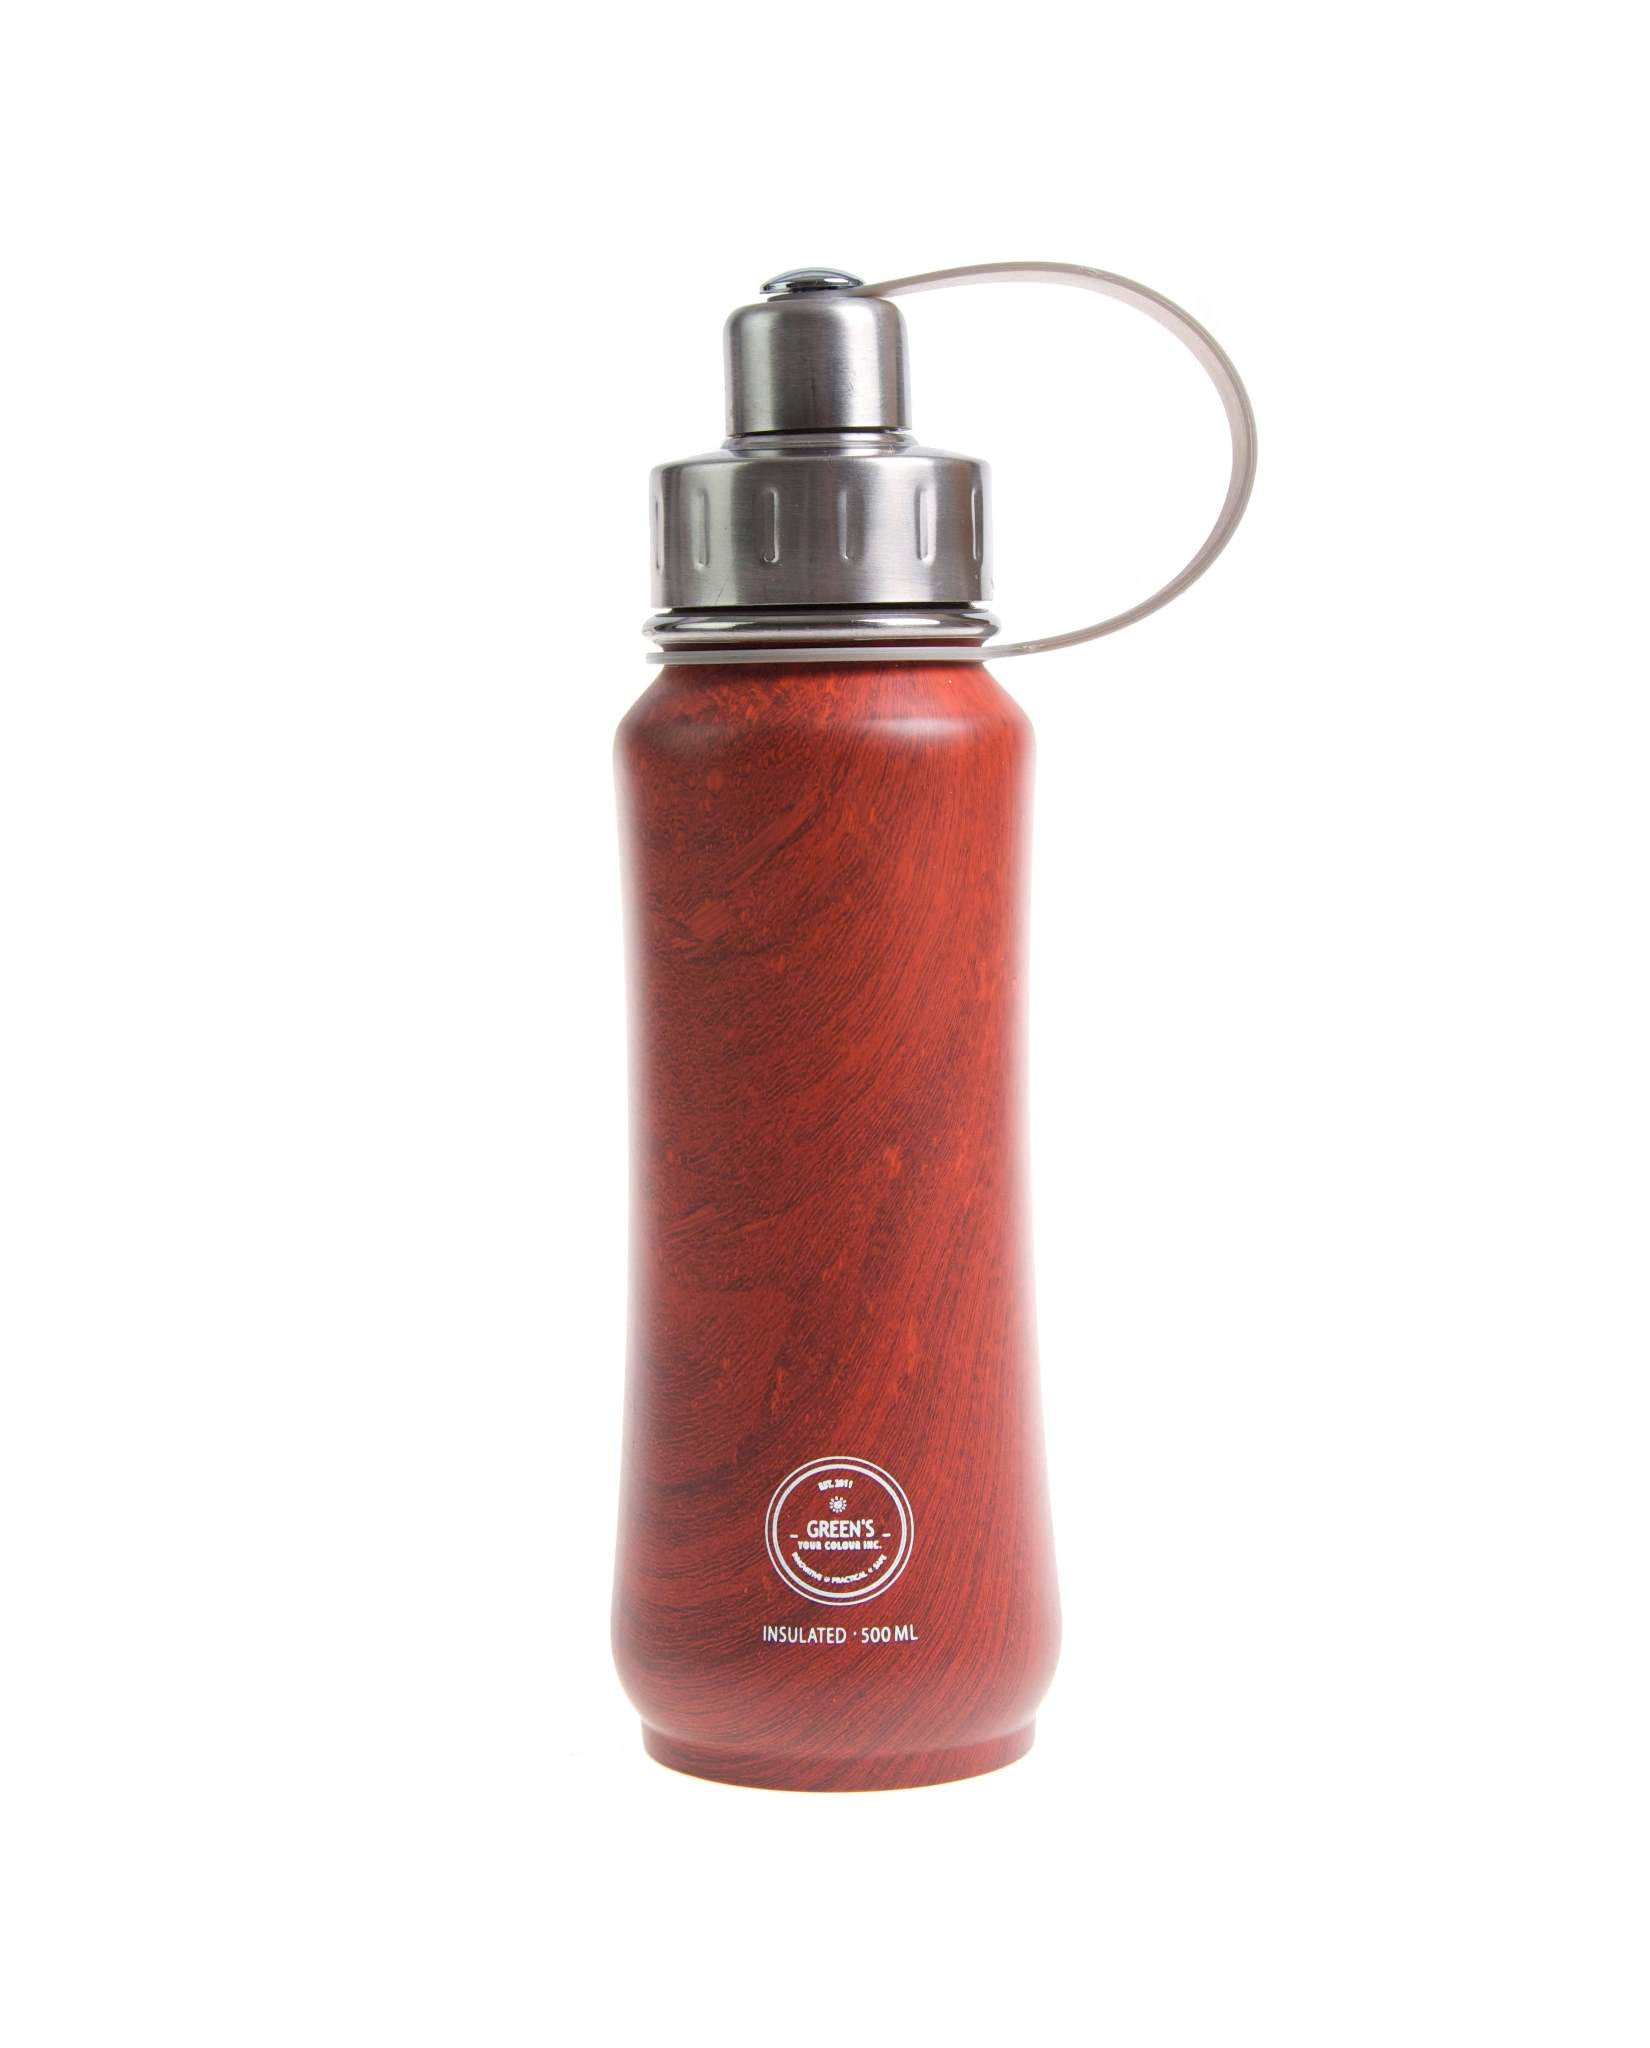 500 ml Beaver Brown limited edition triple insulated vacuum stainless steel water bottle greens your colour silver lid wood bottles, water bottles, wood grain bottles, wood design bottles